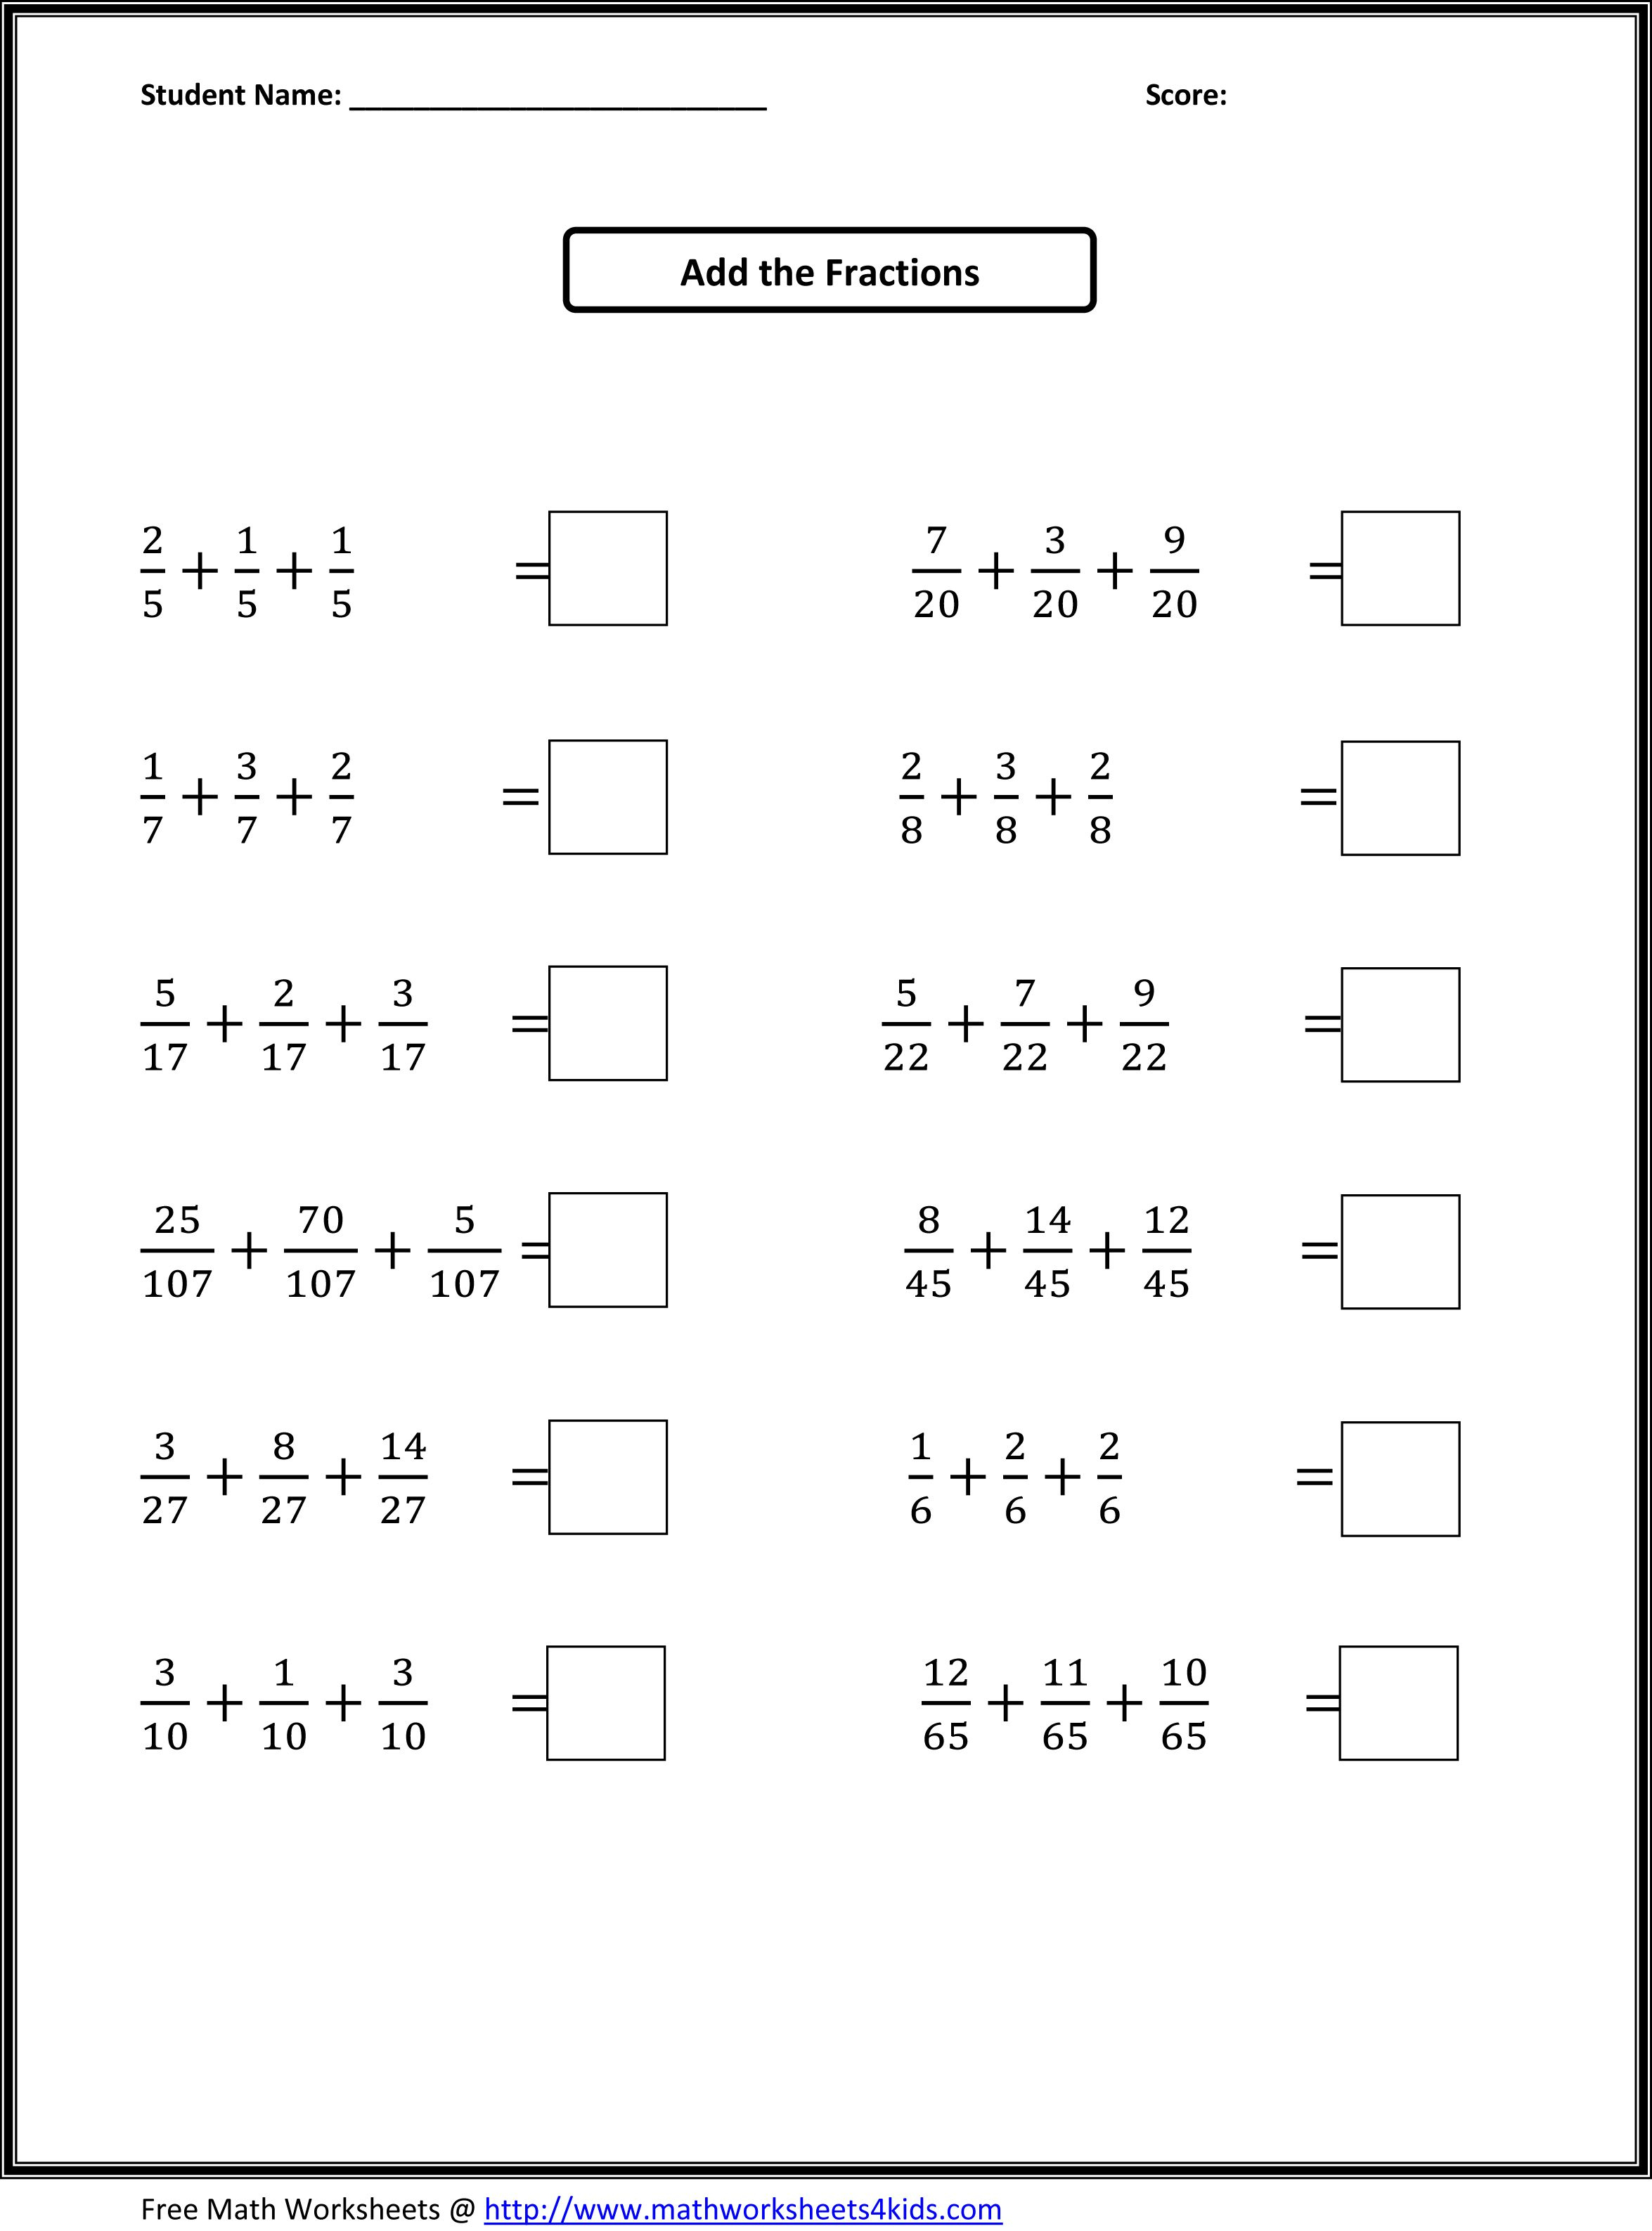 Algebra: Printables 4Th Grade Algebra Worksheets Lemonlilyfestival | Algebra Worksheets For 4Th Grade Printable